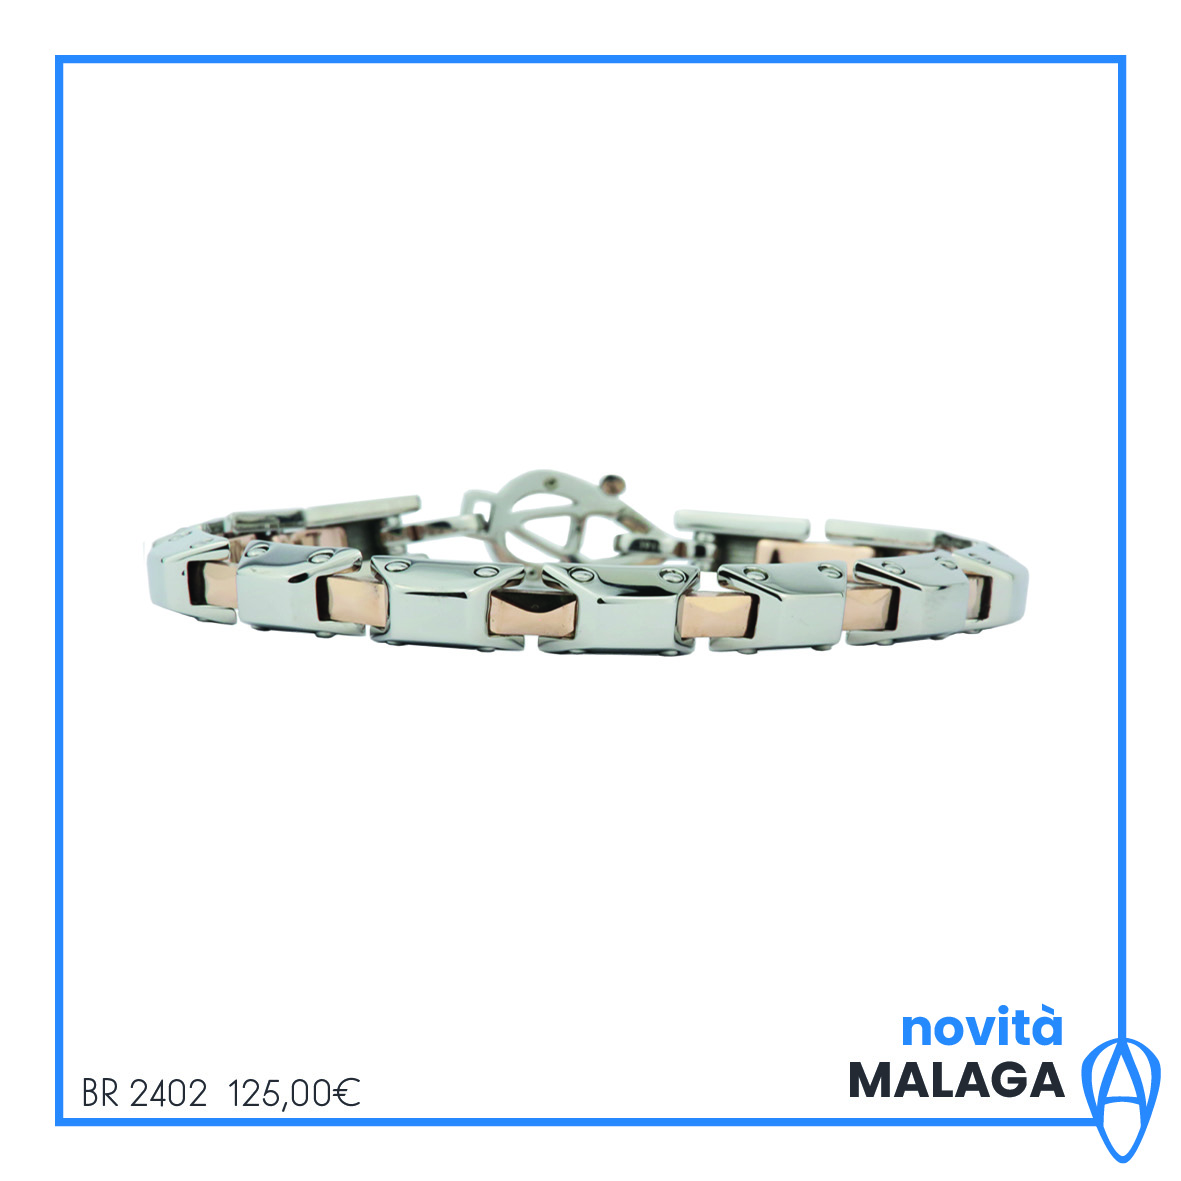 The aragonese bracelet 316l stainless steel treatment ip coffe malaga BR2402